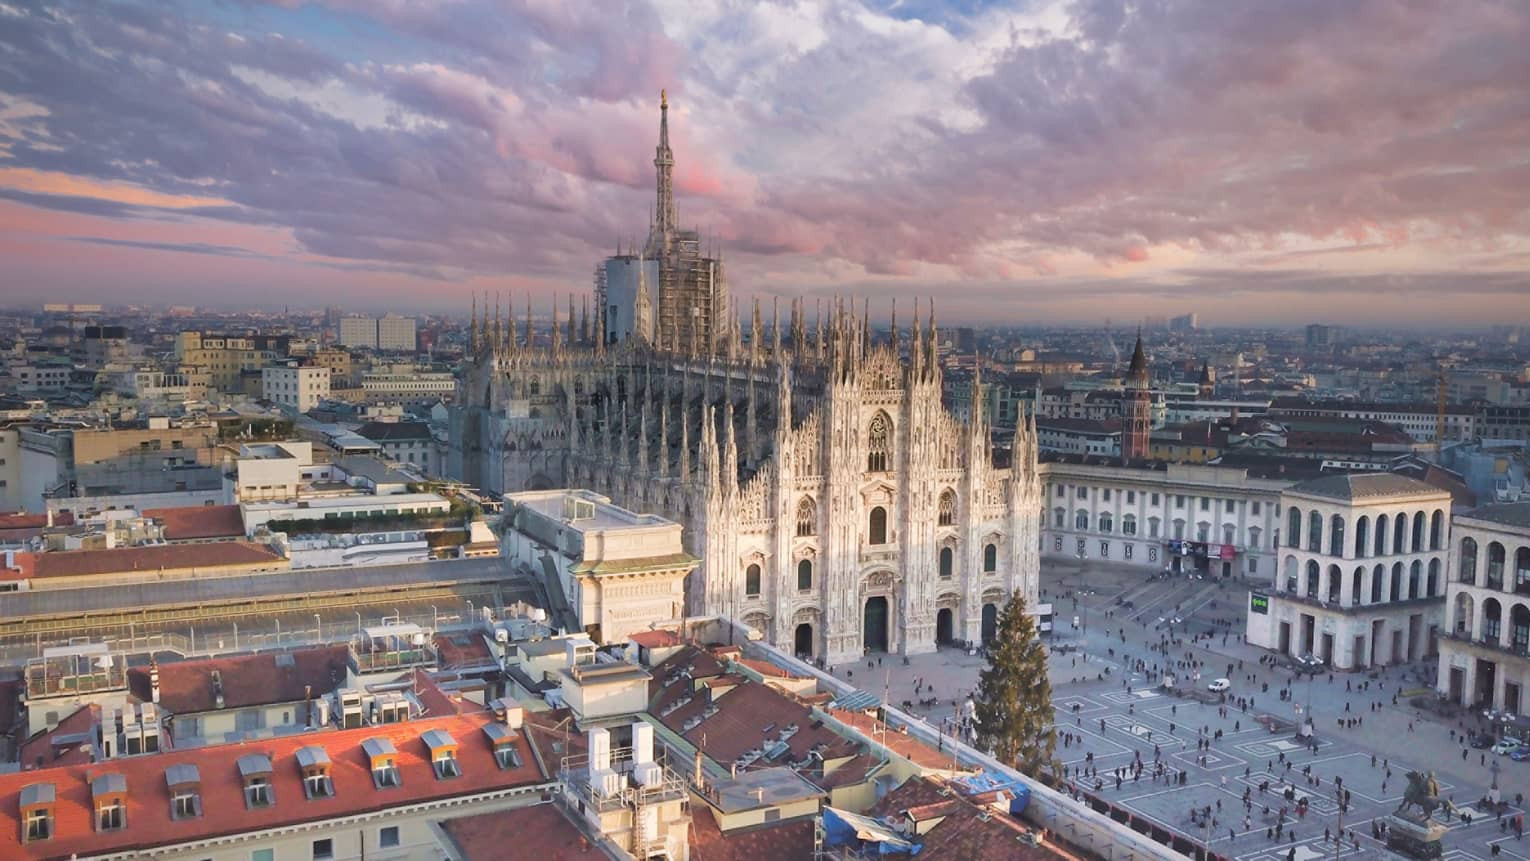 Turin withdrew from Italy's joint bid for the 2026 Winter Olympic and Paralympic Games because of tension between them and Milan, one of the other cities involved in the campaign ©Getty Images